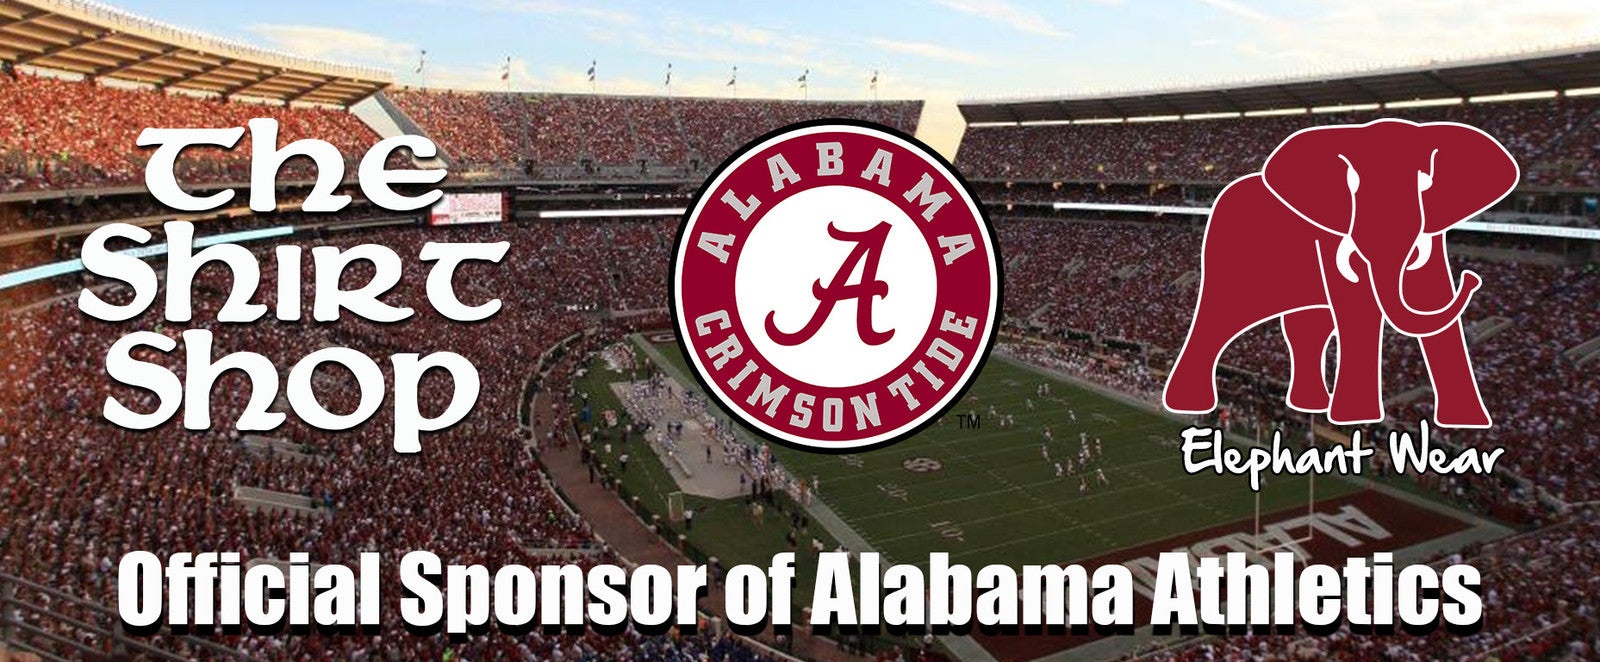 University of Alabama Elephant Wear Apparel